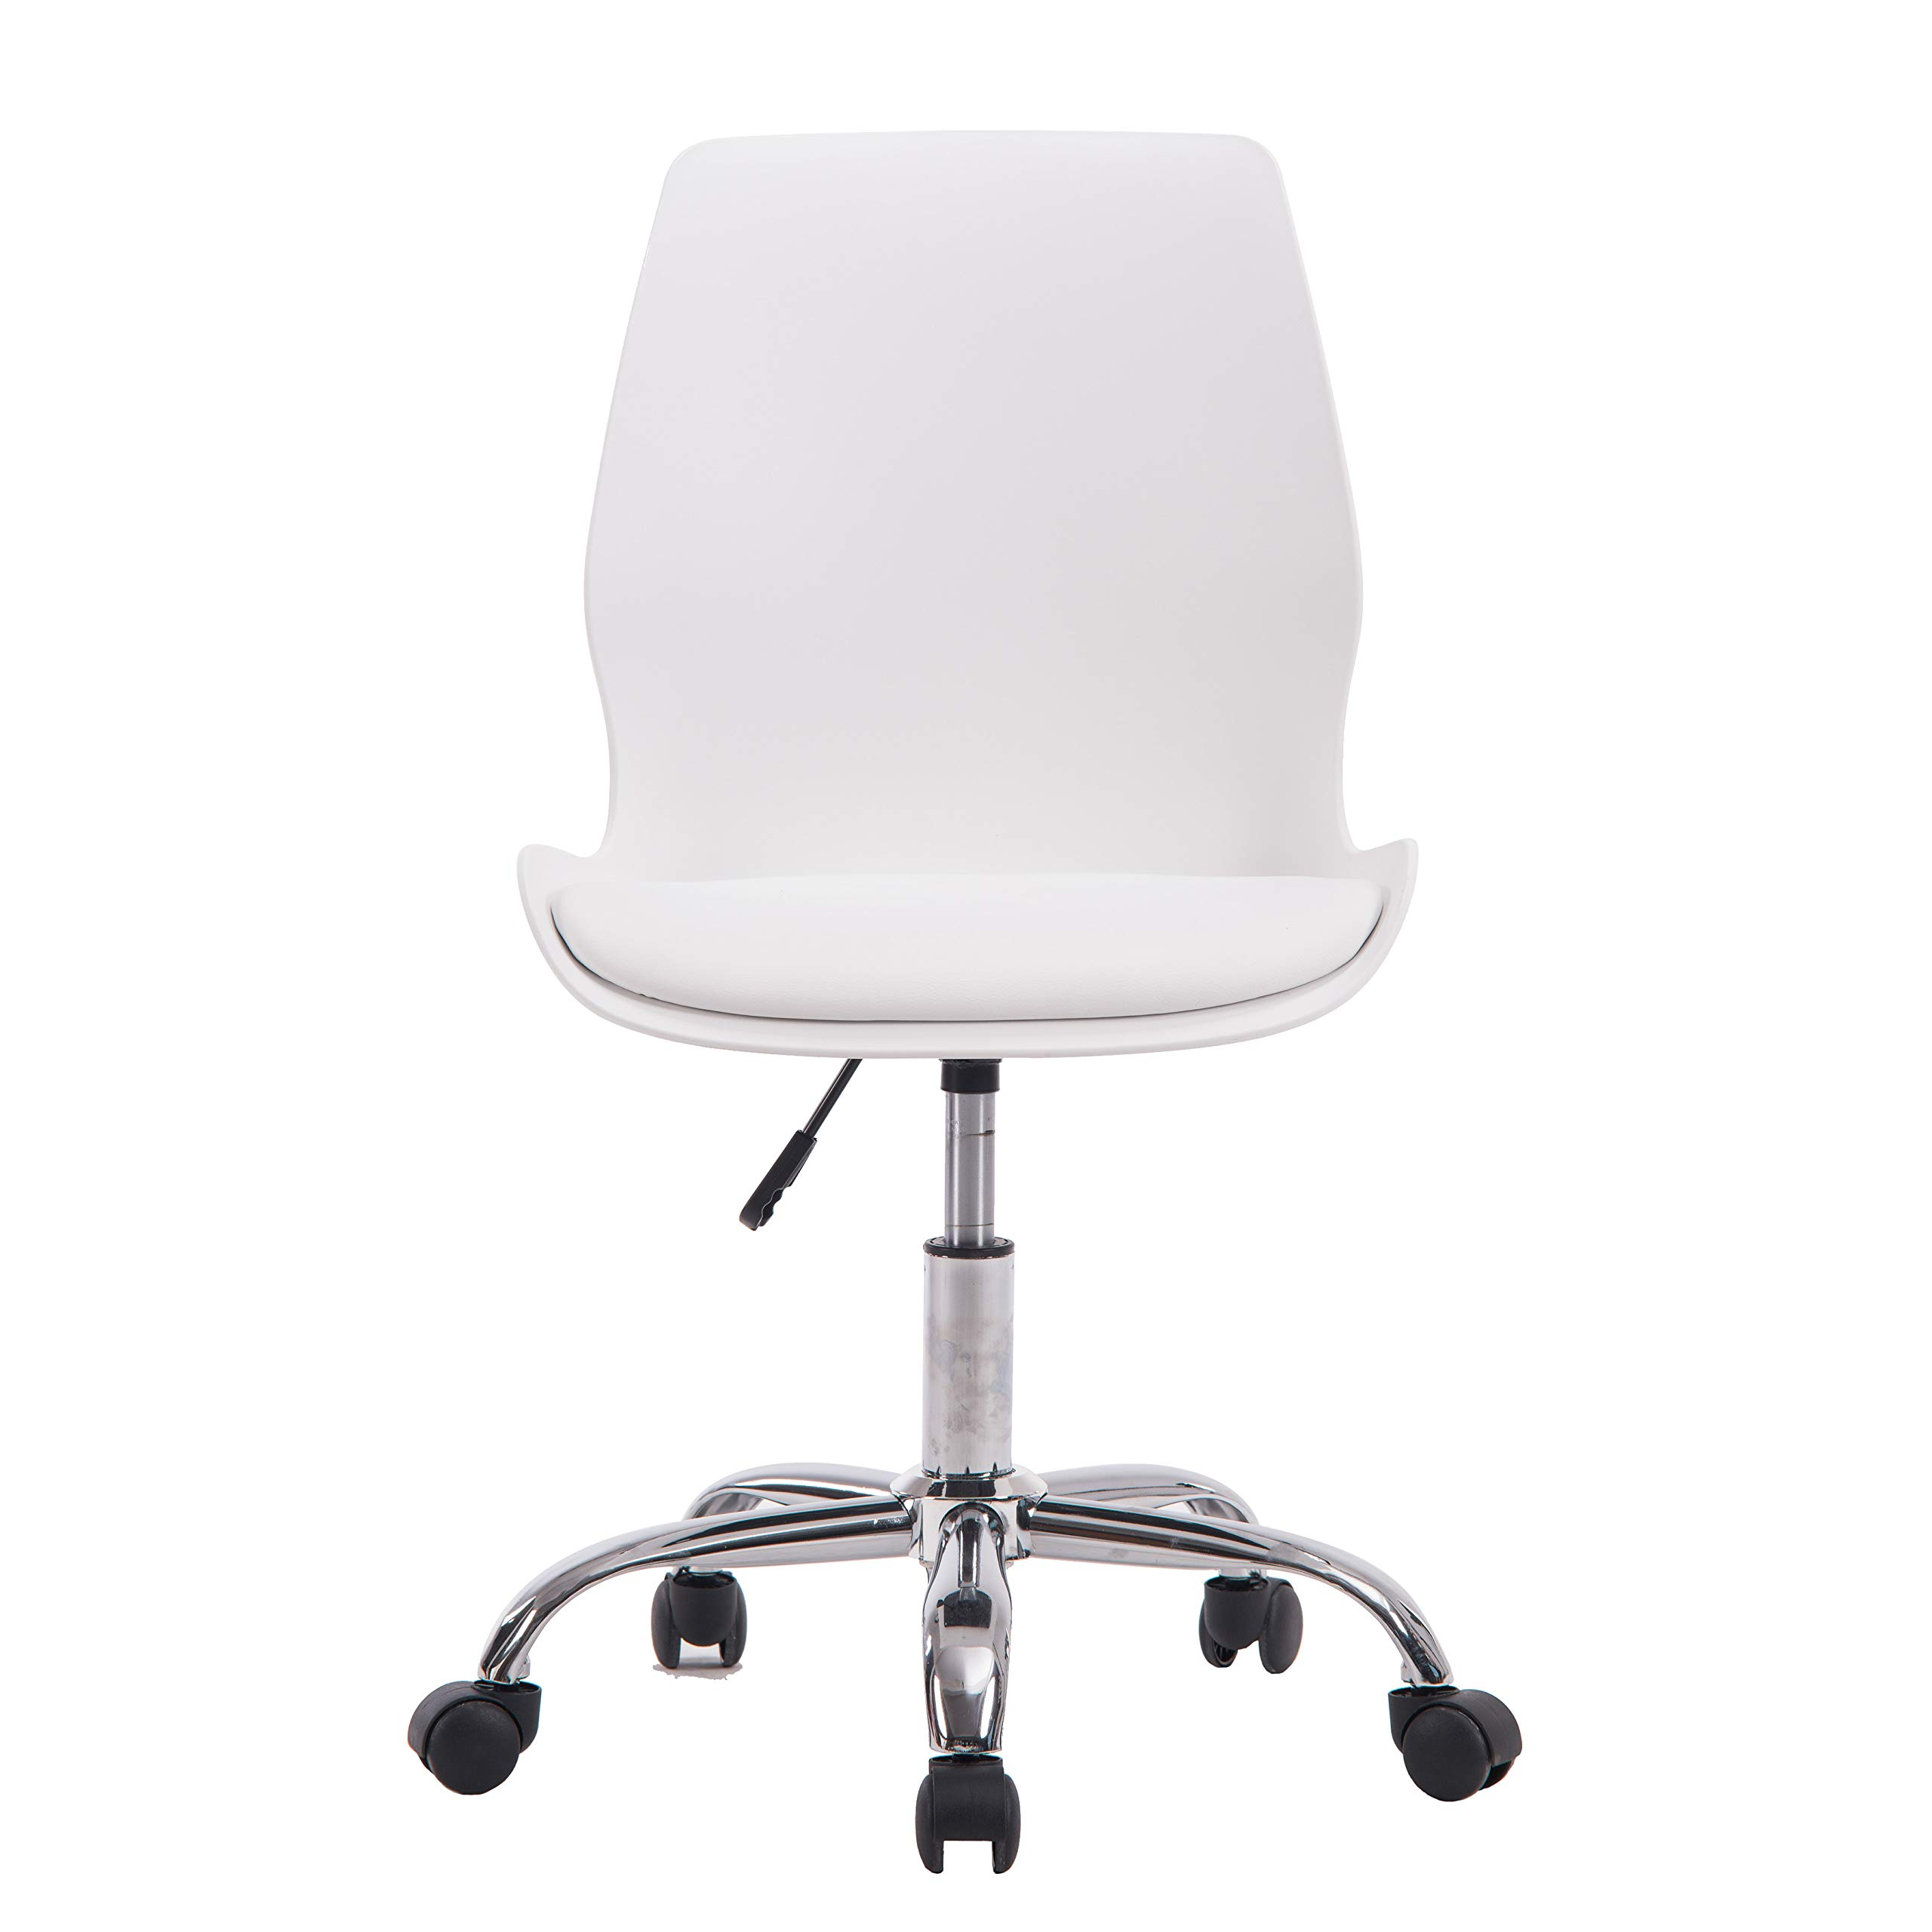 Porthos Home LVC006A WHT Adjustable Height Office Desk Chair with Wheels, Easy Assembly, White or Black, One Size by Porthos Home (Image #2)